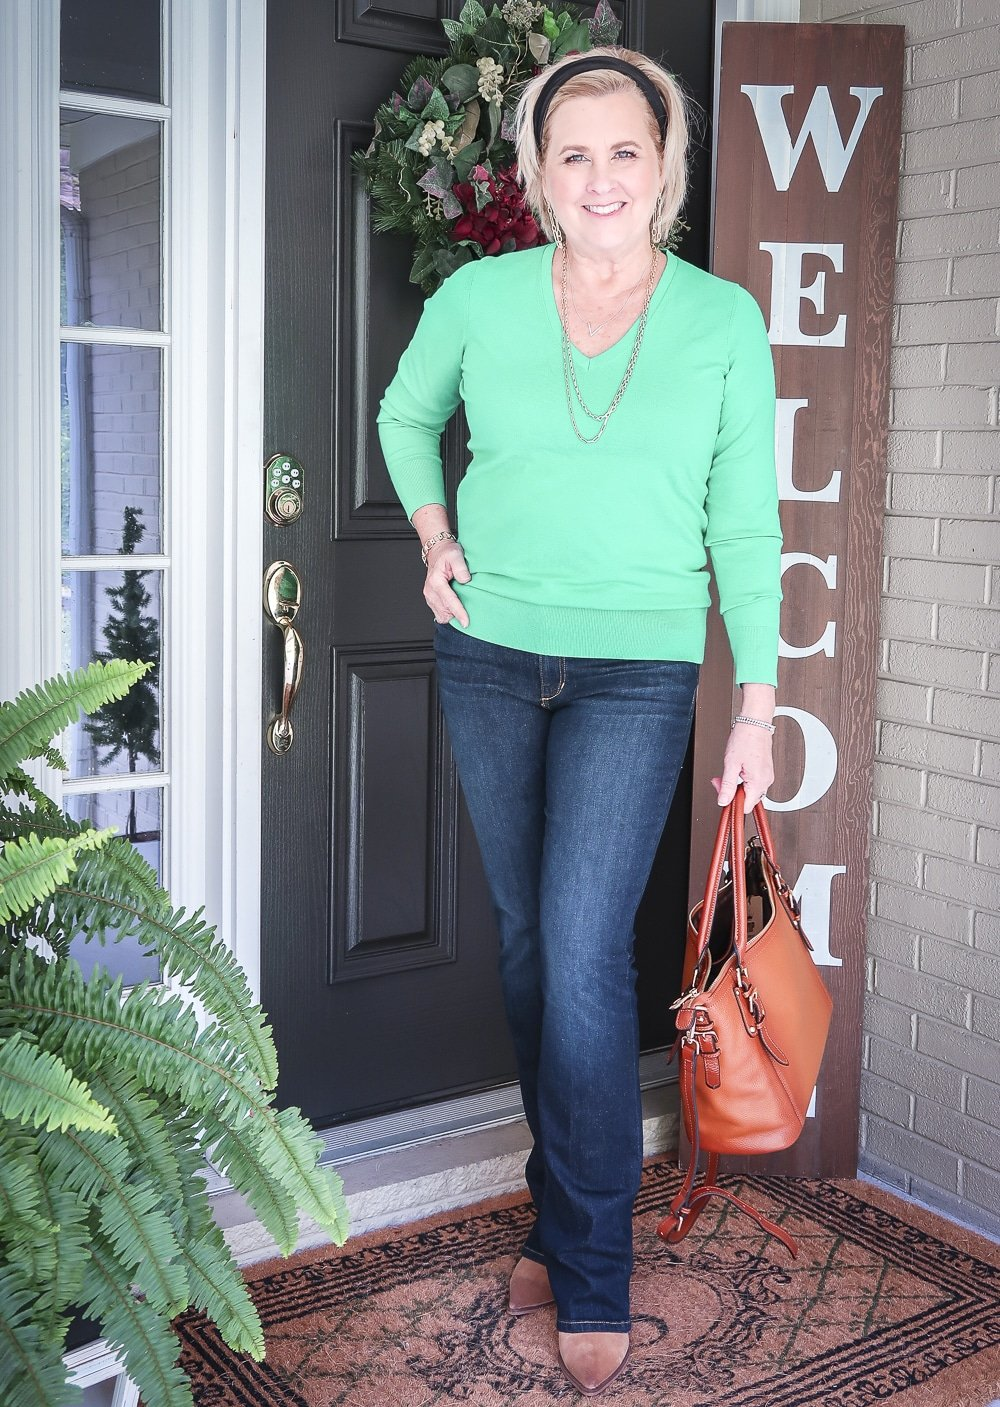 Fashion Blogger 50 Is Not Old is wearing a vibrant green sweater, bootcut jeans, and ankle boots for fall